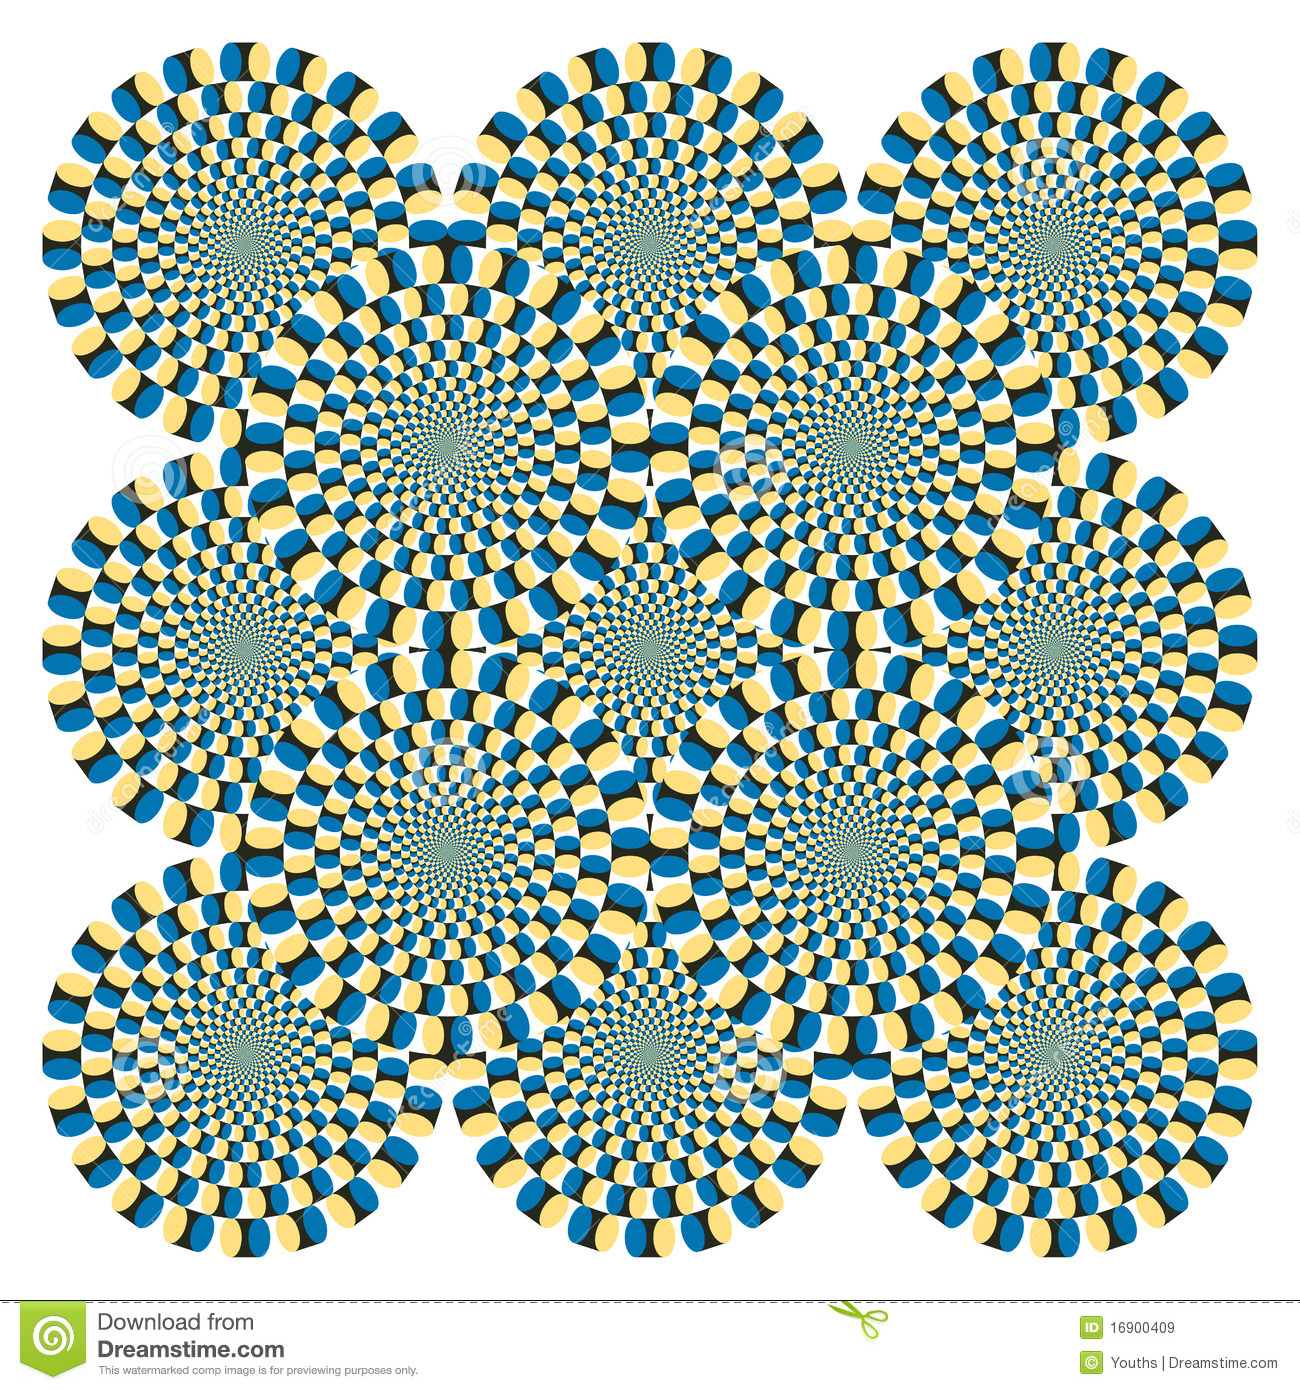 Zen 3d Wallpaper Optical Illusion Spin Cycle Vector Royalty Free Stock